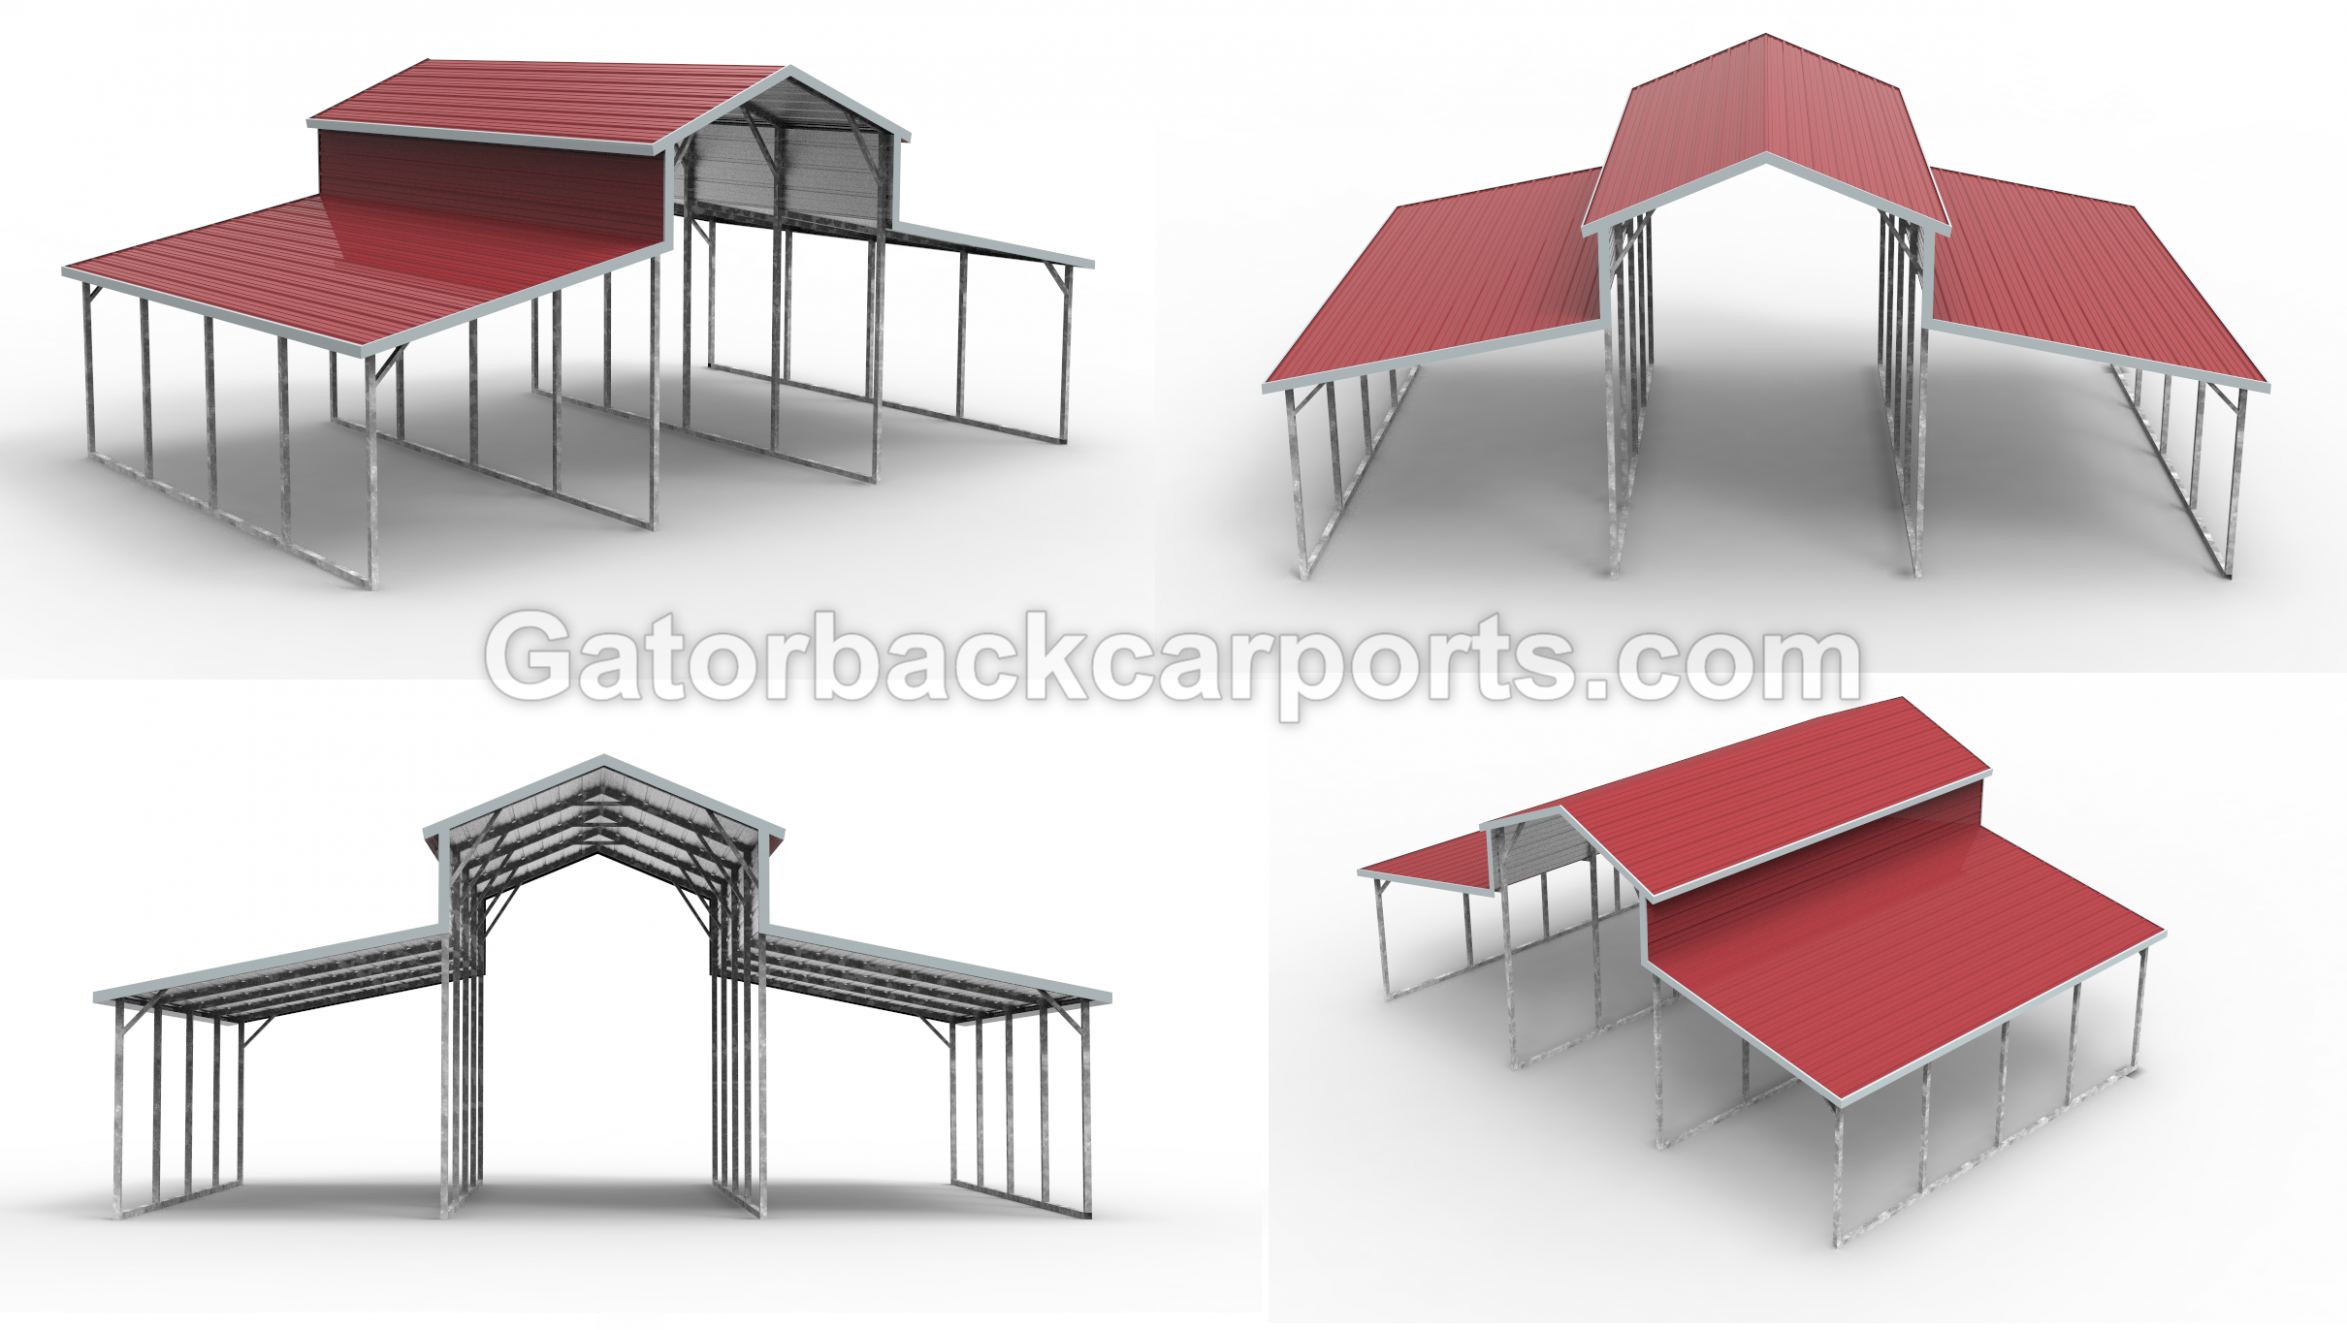 Barn Gallery Gatorback CarPorts | River In 10 | Carport ..